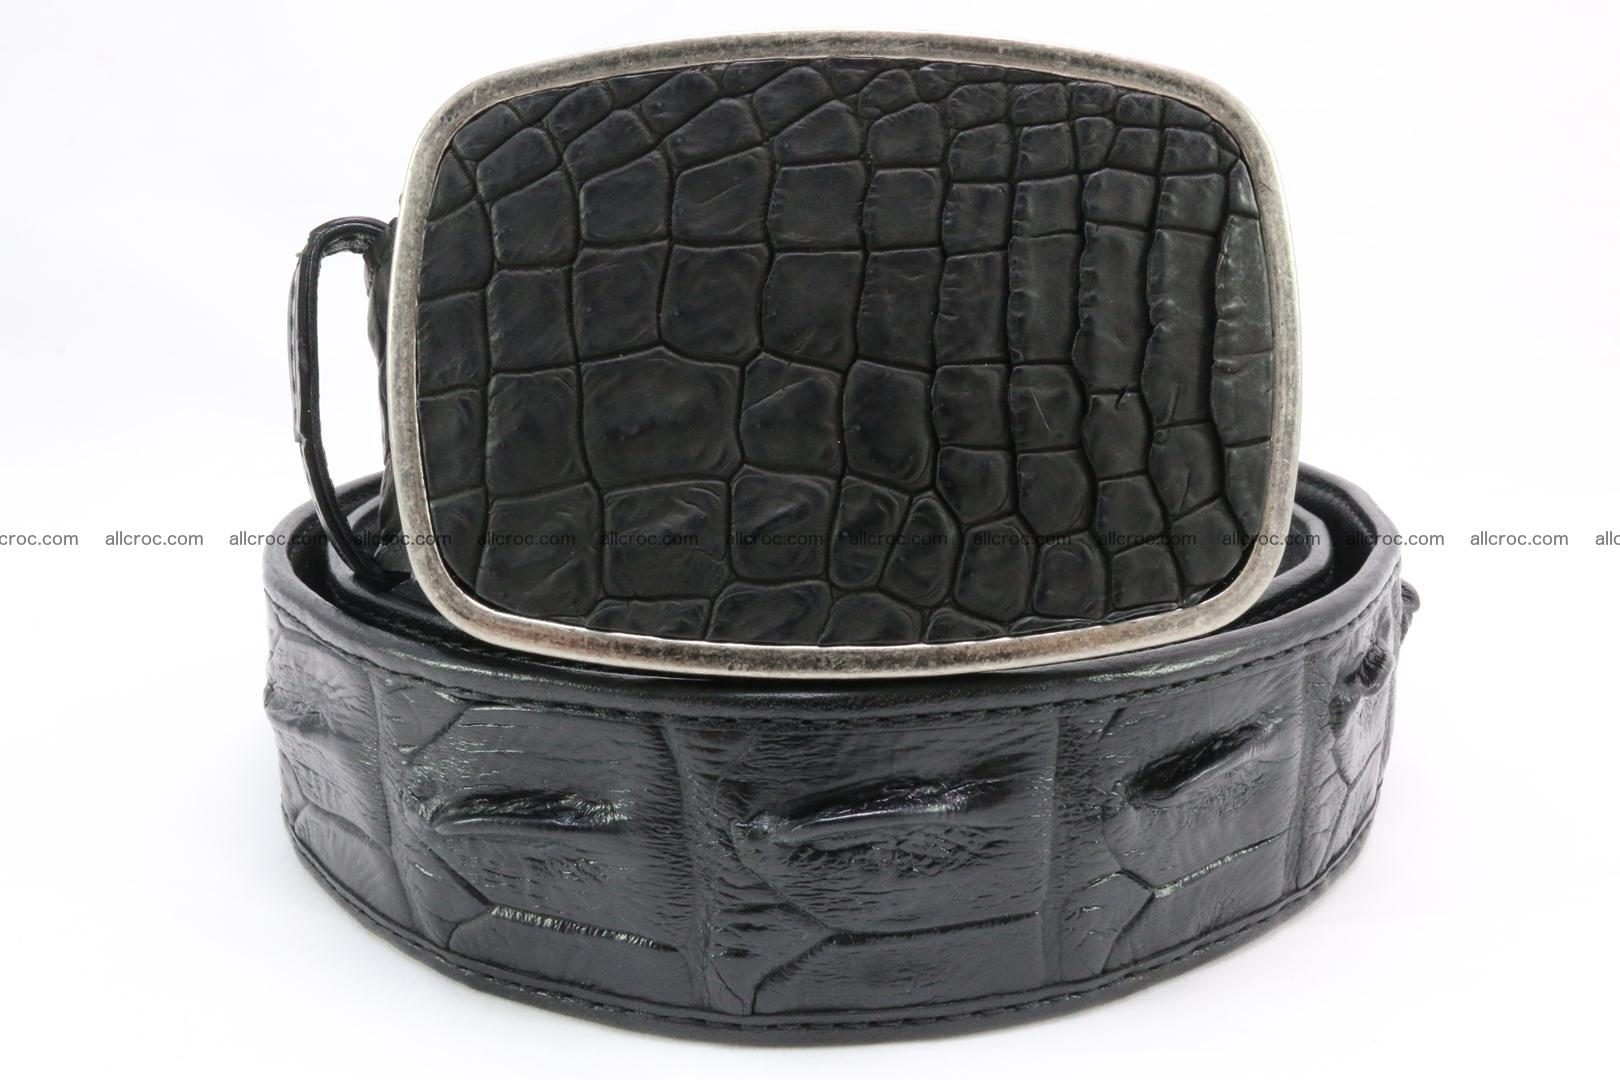 Genuine crocodile leather hornback belt 085 Foto 1